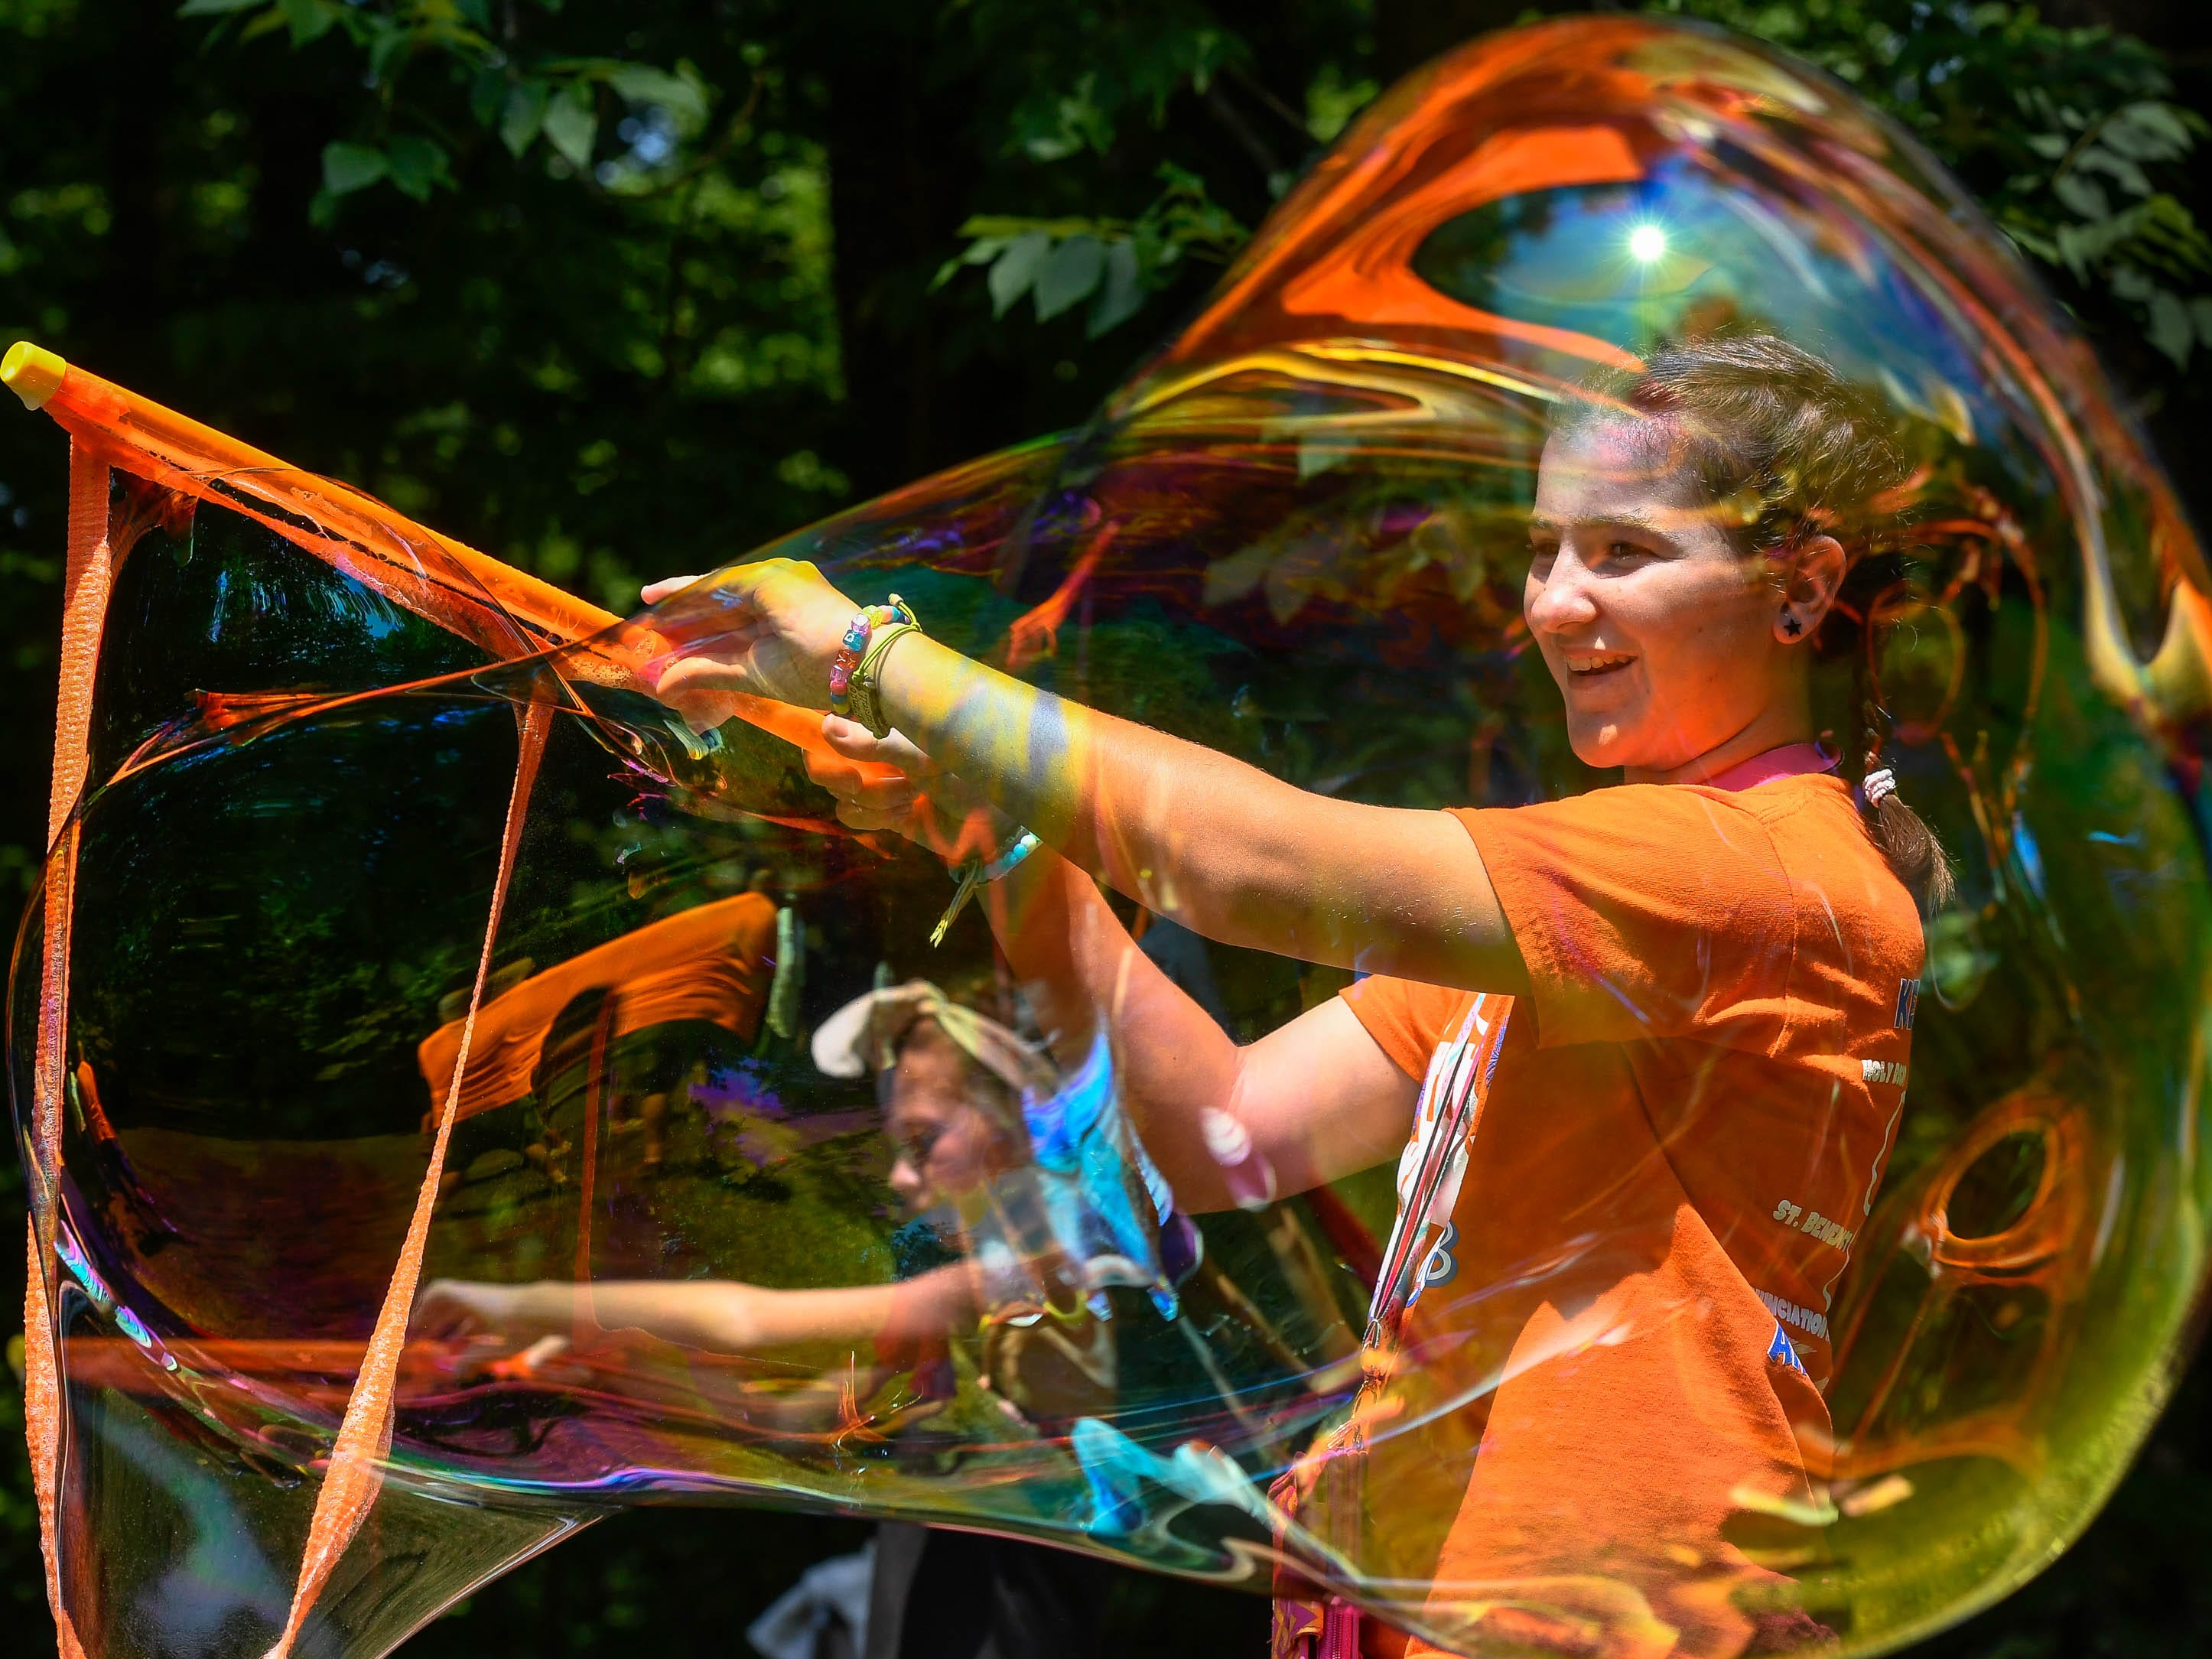 Lydia Jones, 12 years-old, makes a giant soap bubble during the back to school Party in the Park event held at John James Audubon State Park Saturday, August 4, 2018.